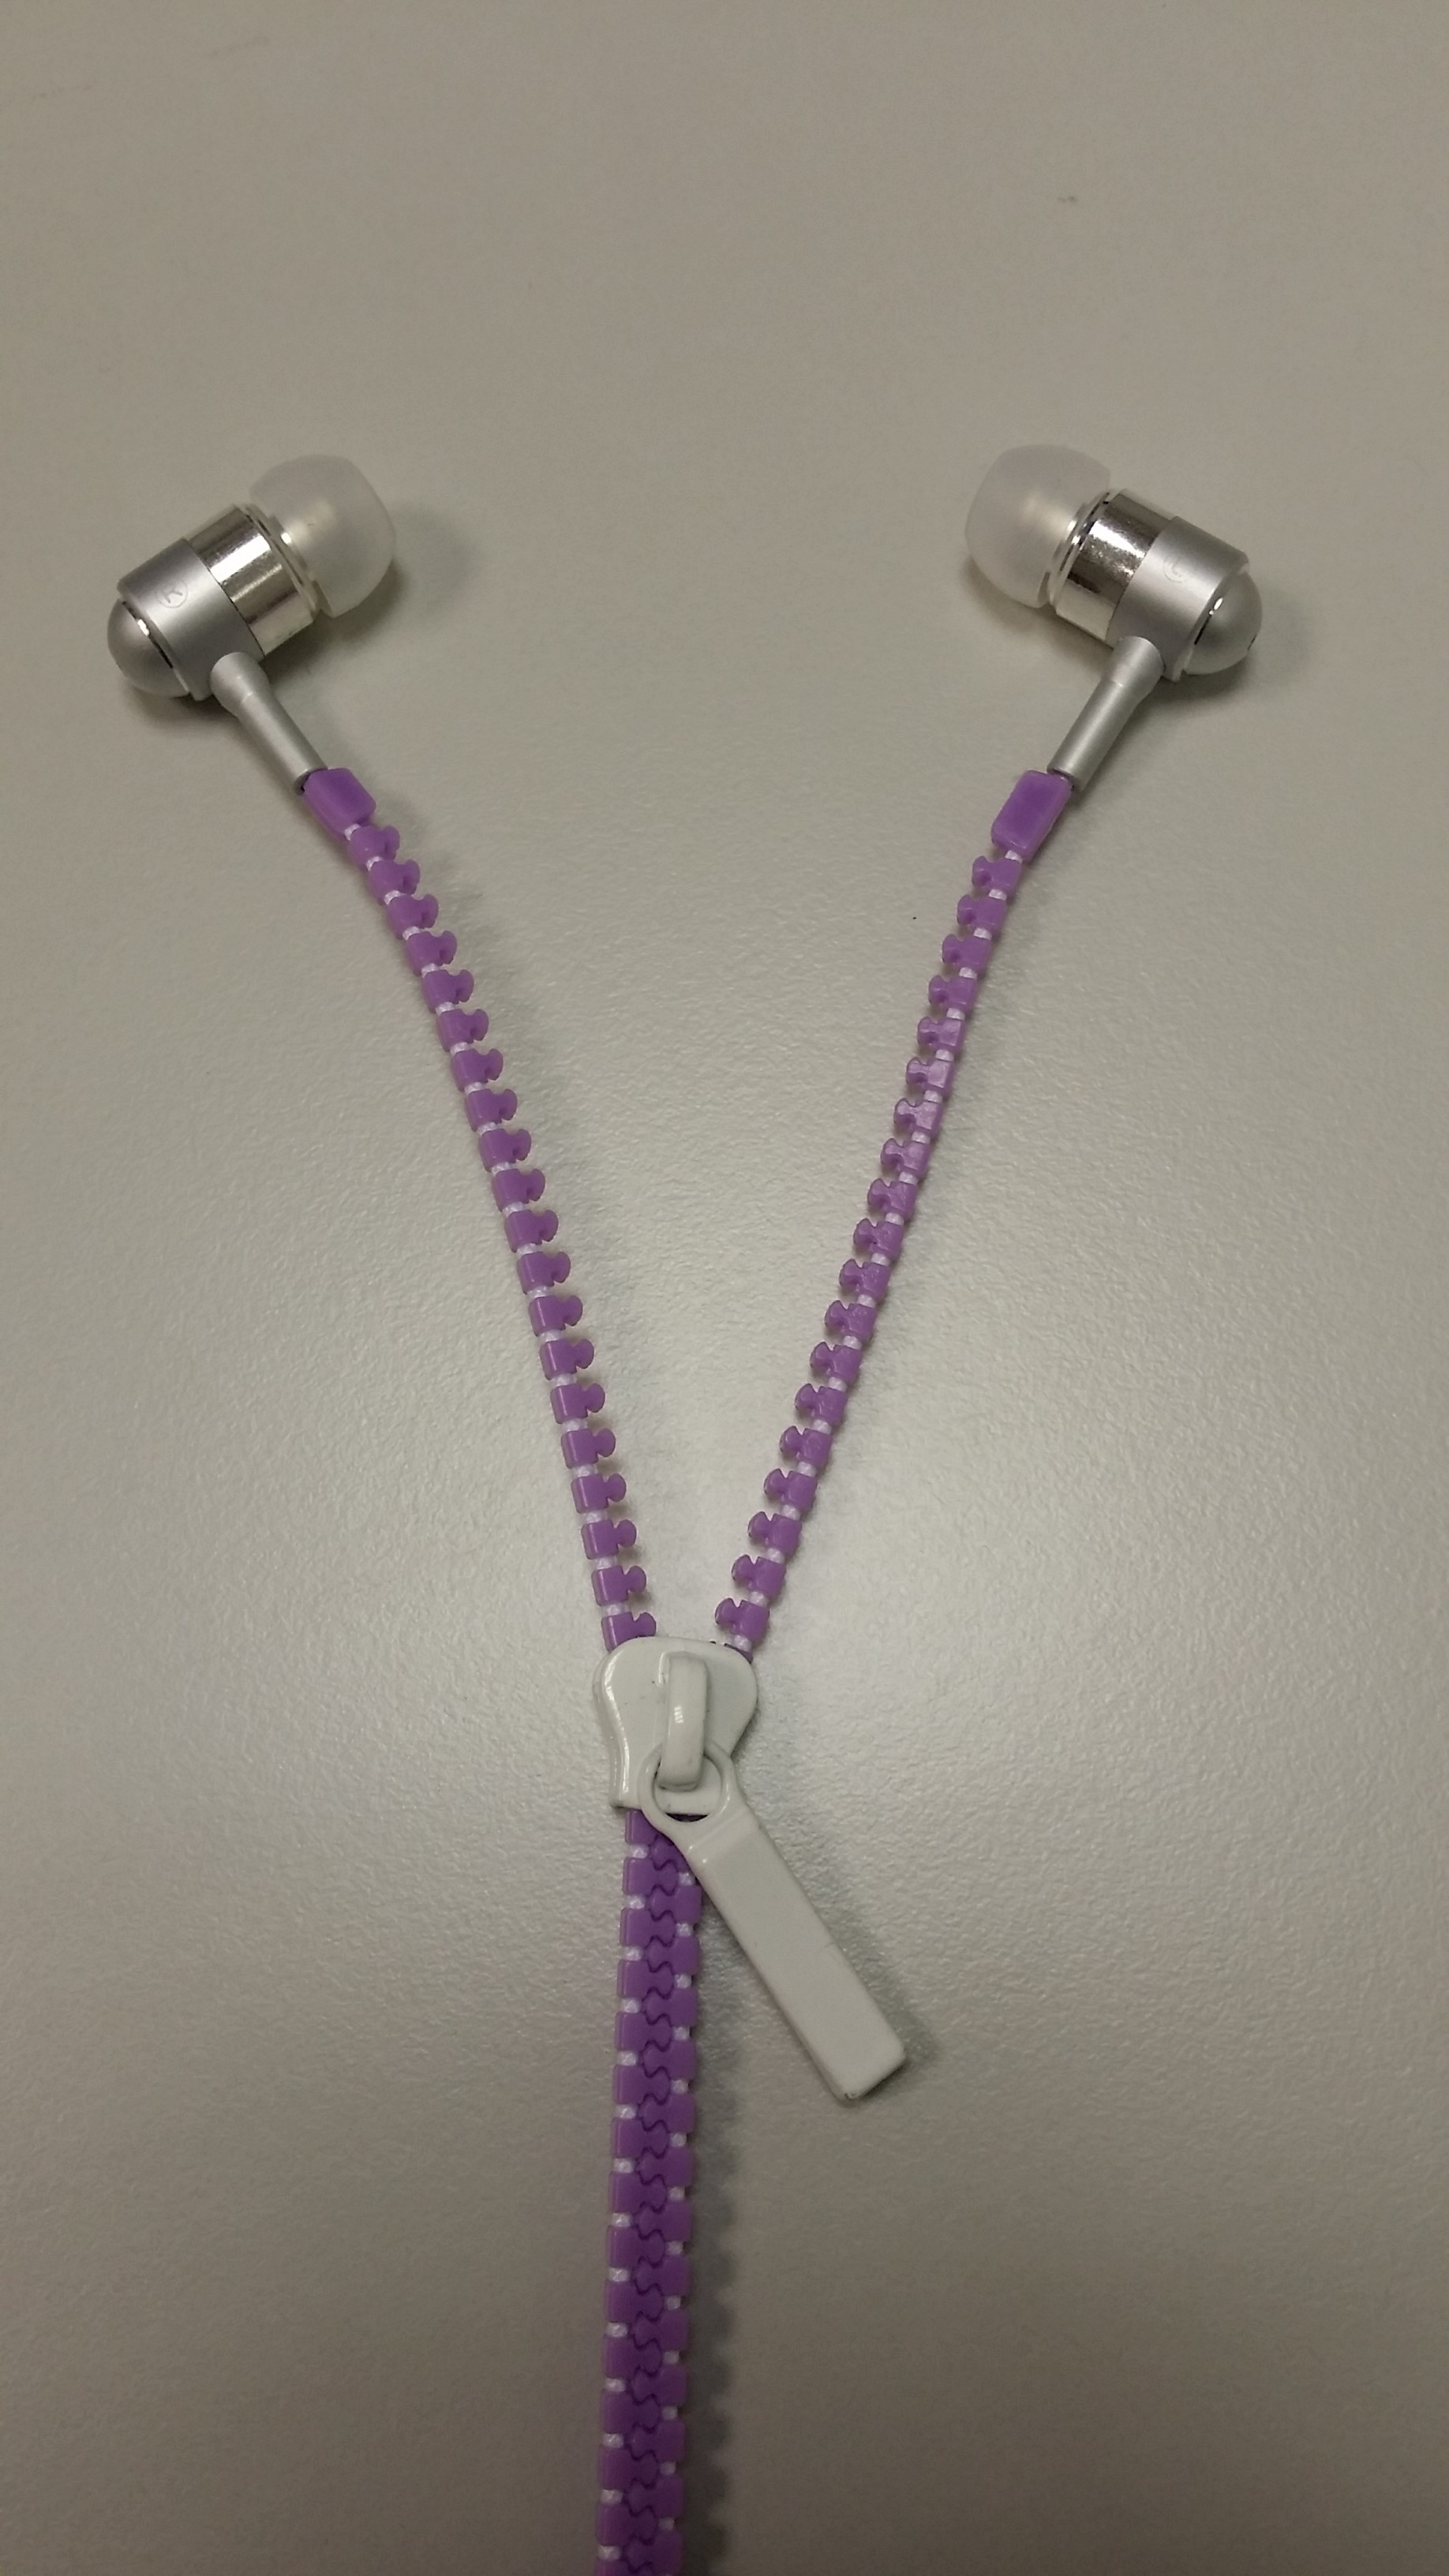 Zipper Led Earphone Purple image